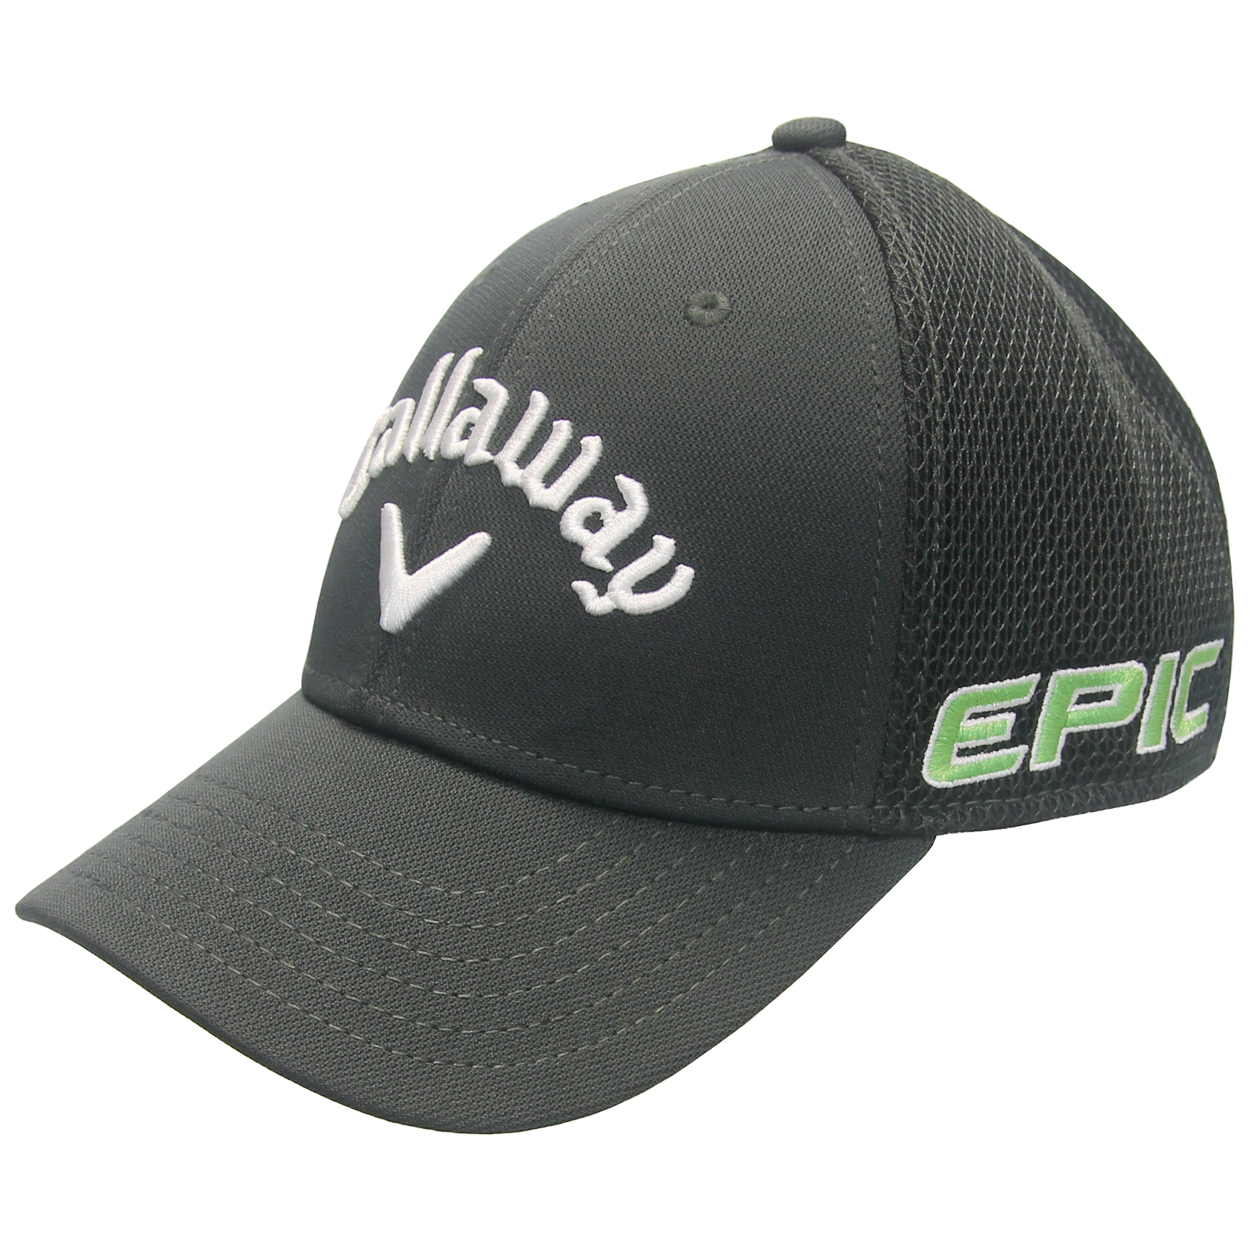 Callaway Golf Epic Tour Fitted Hat - GolfEtail.com d130269bd60